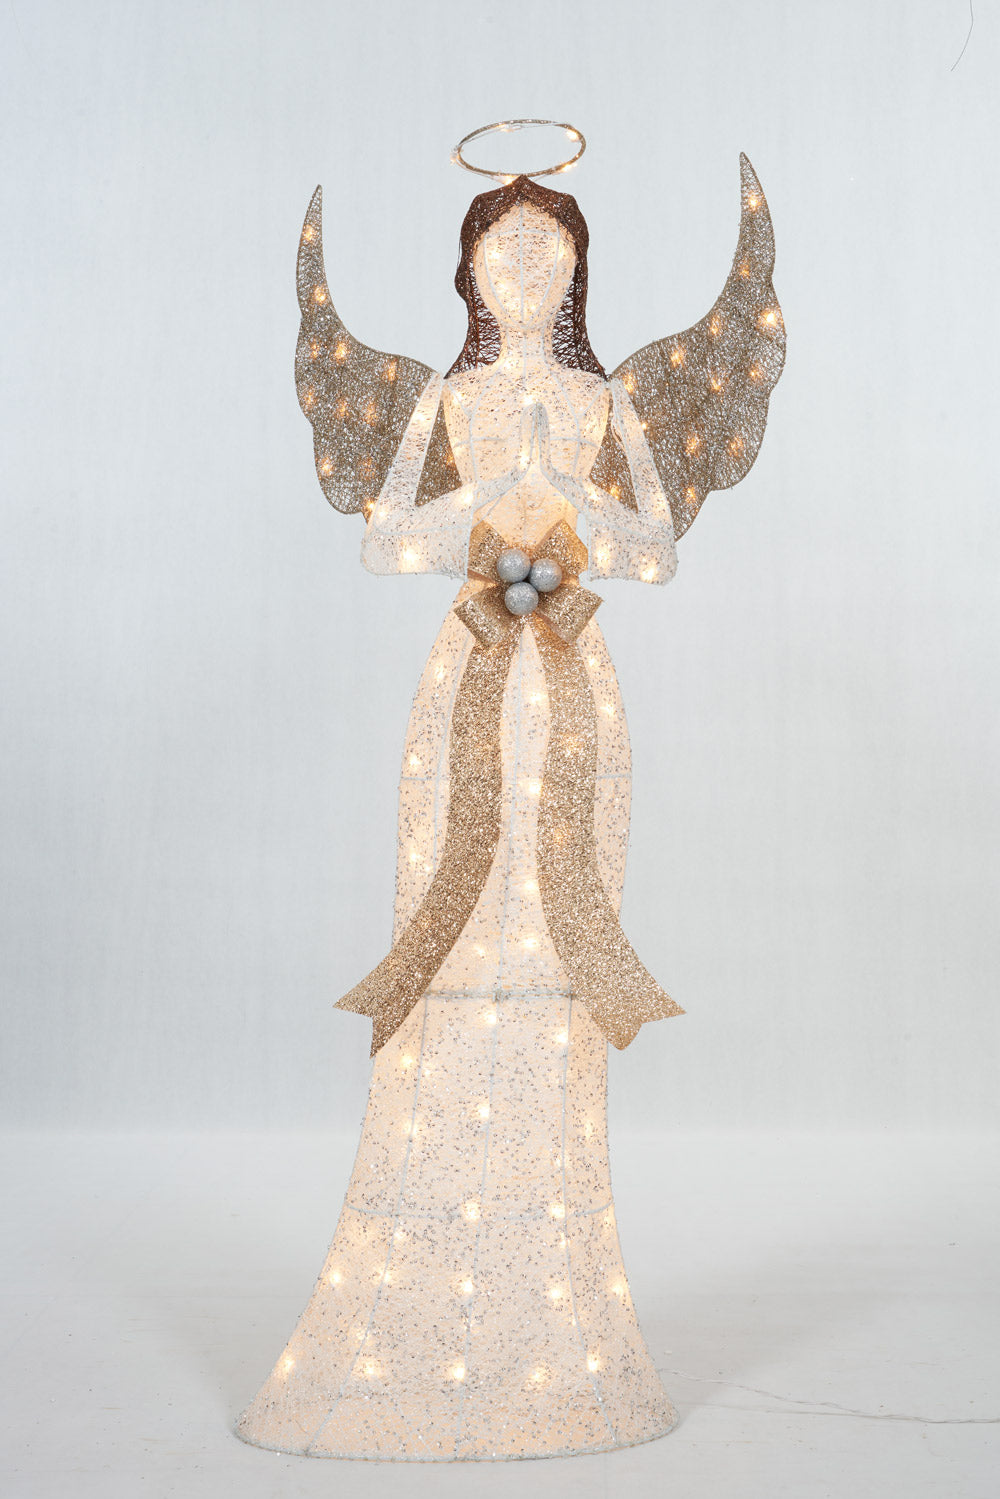 "60"" UL Glittering Thread Praying Angel Sculpture"